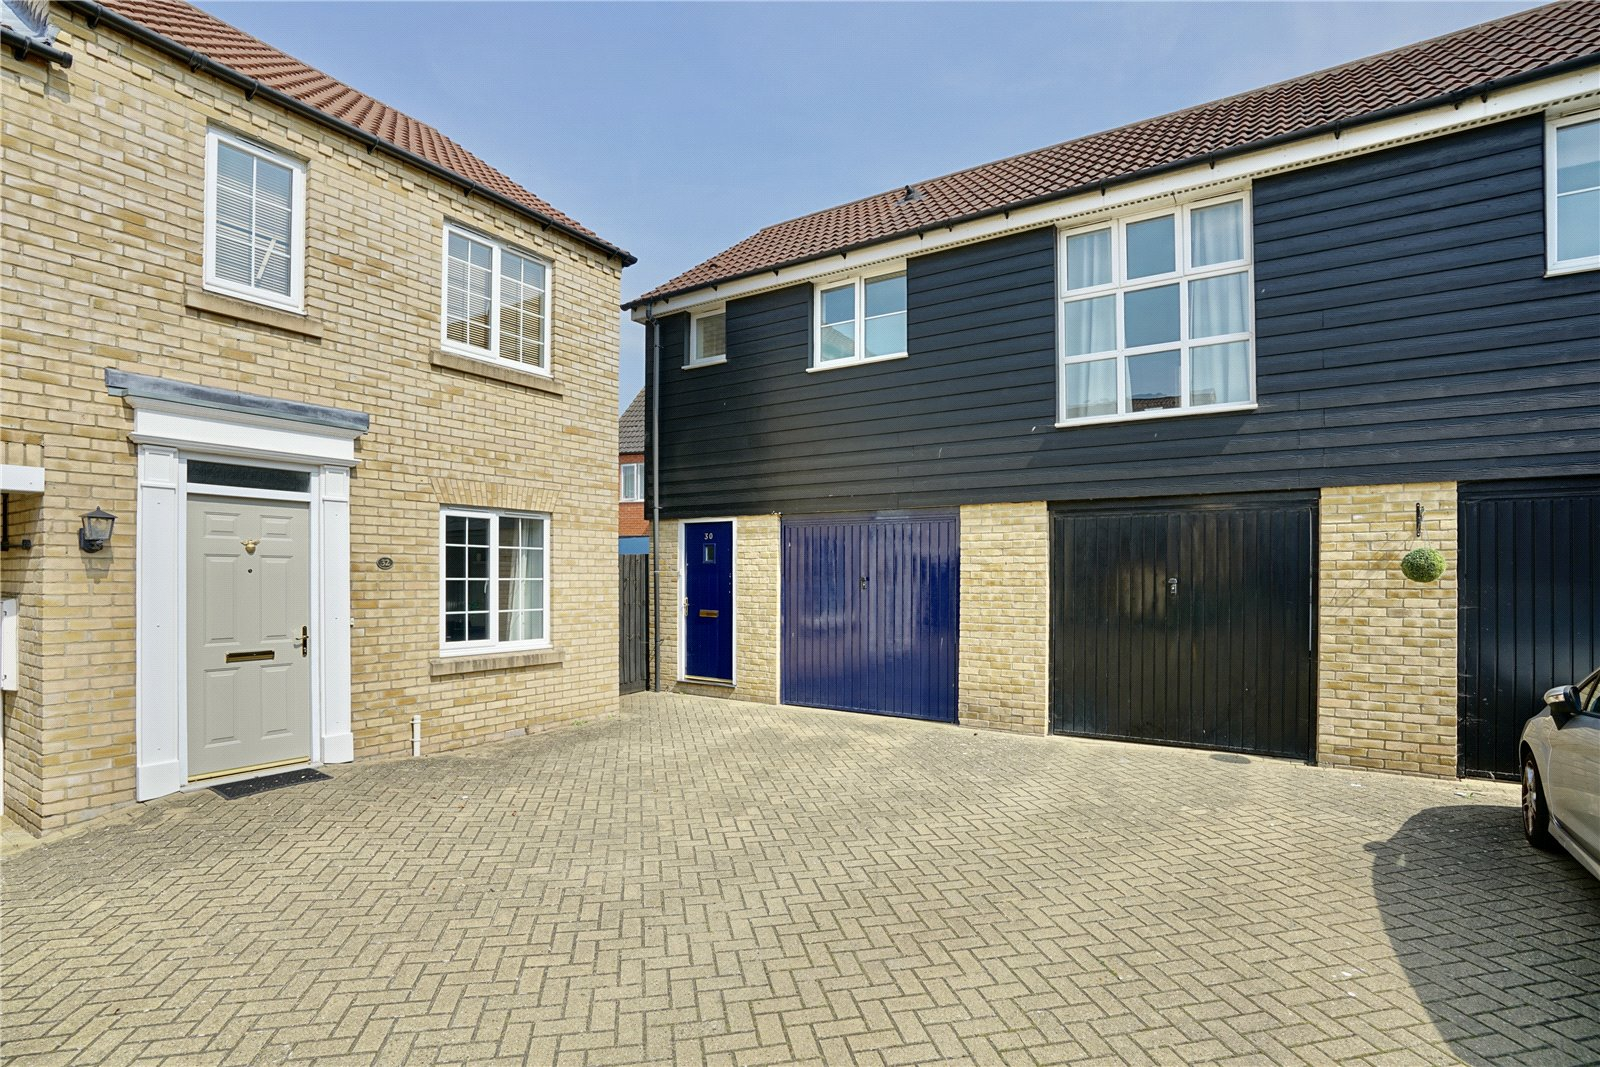 1 bed house for sale in Malden Way, Eynesbury, PE19